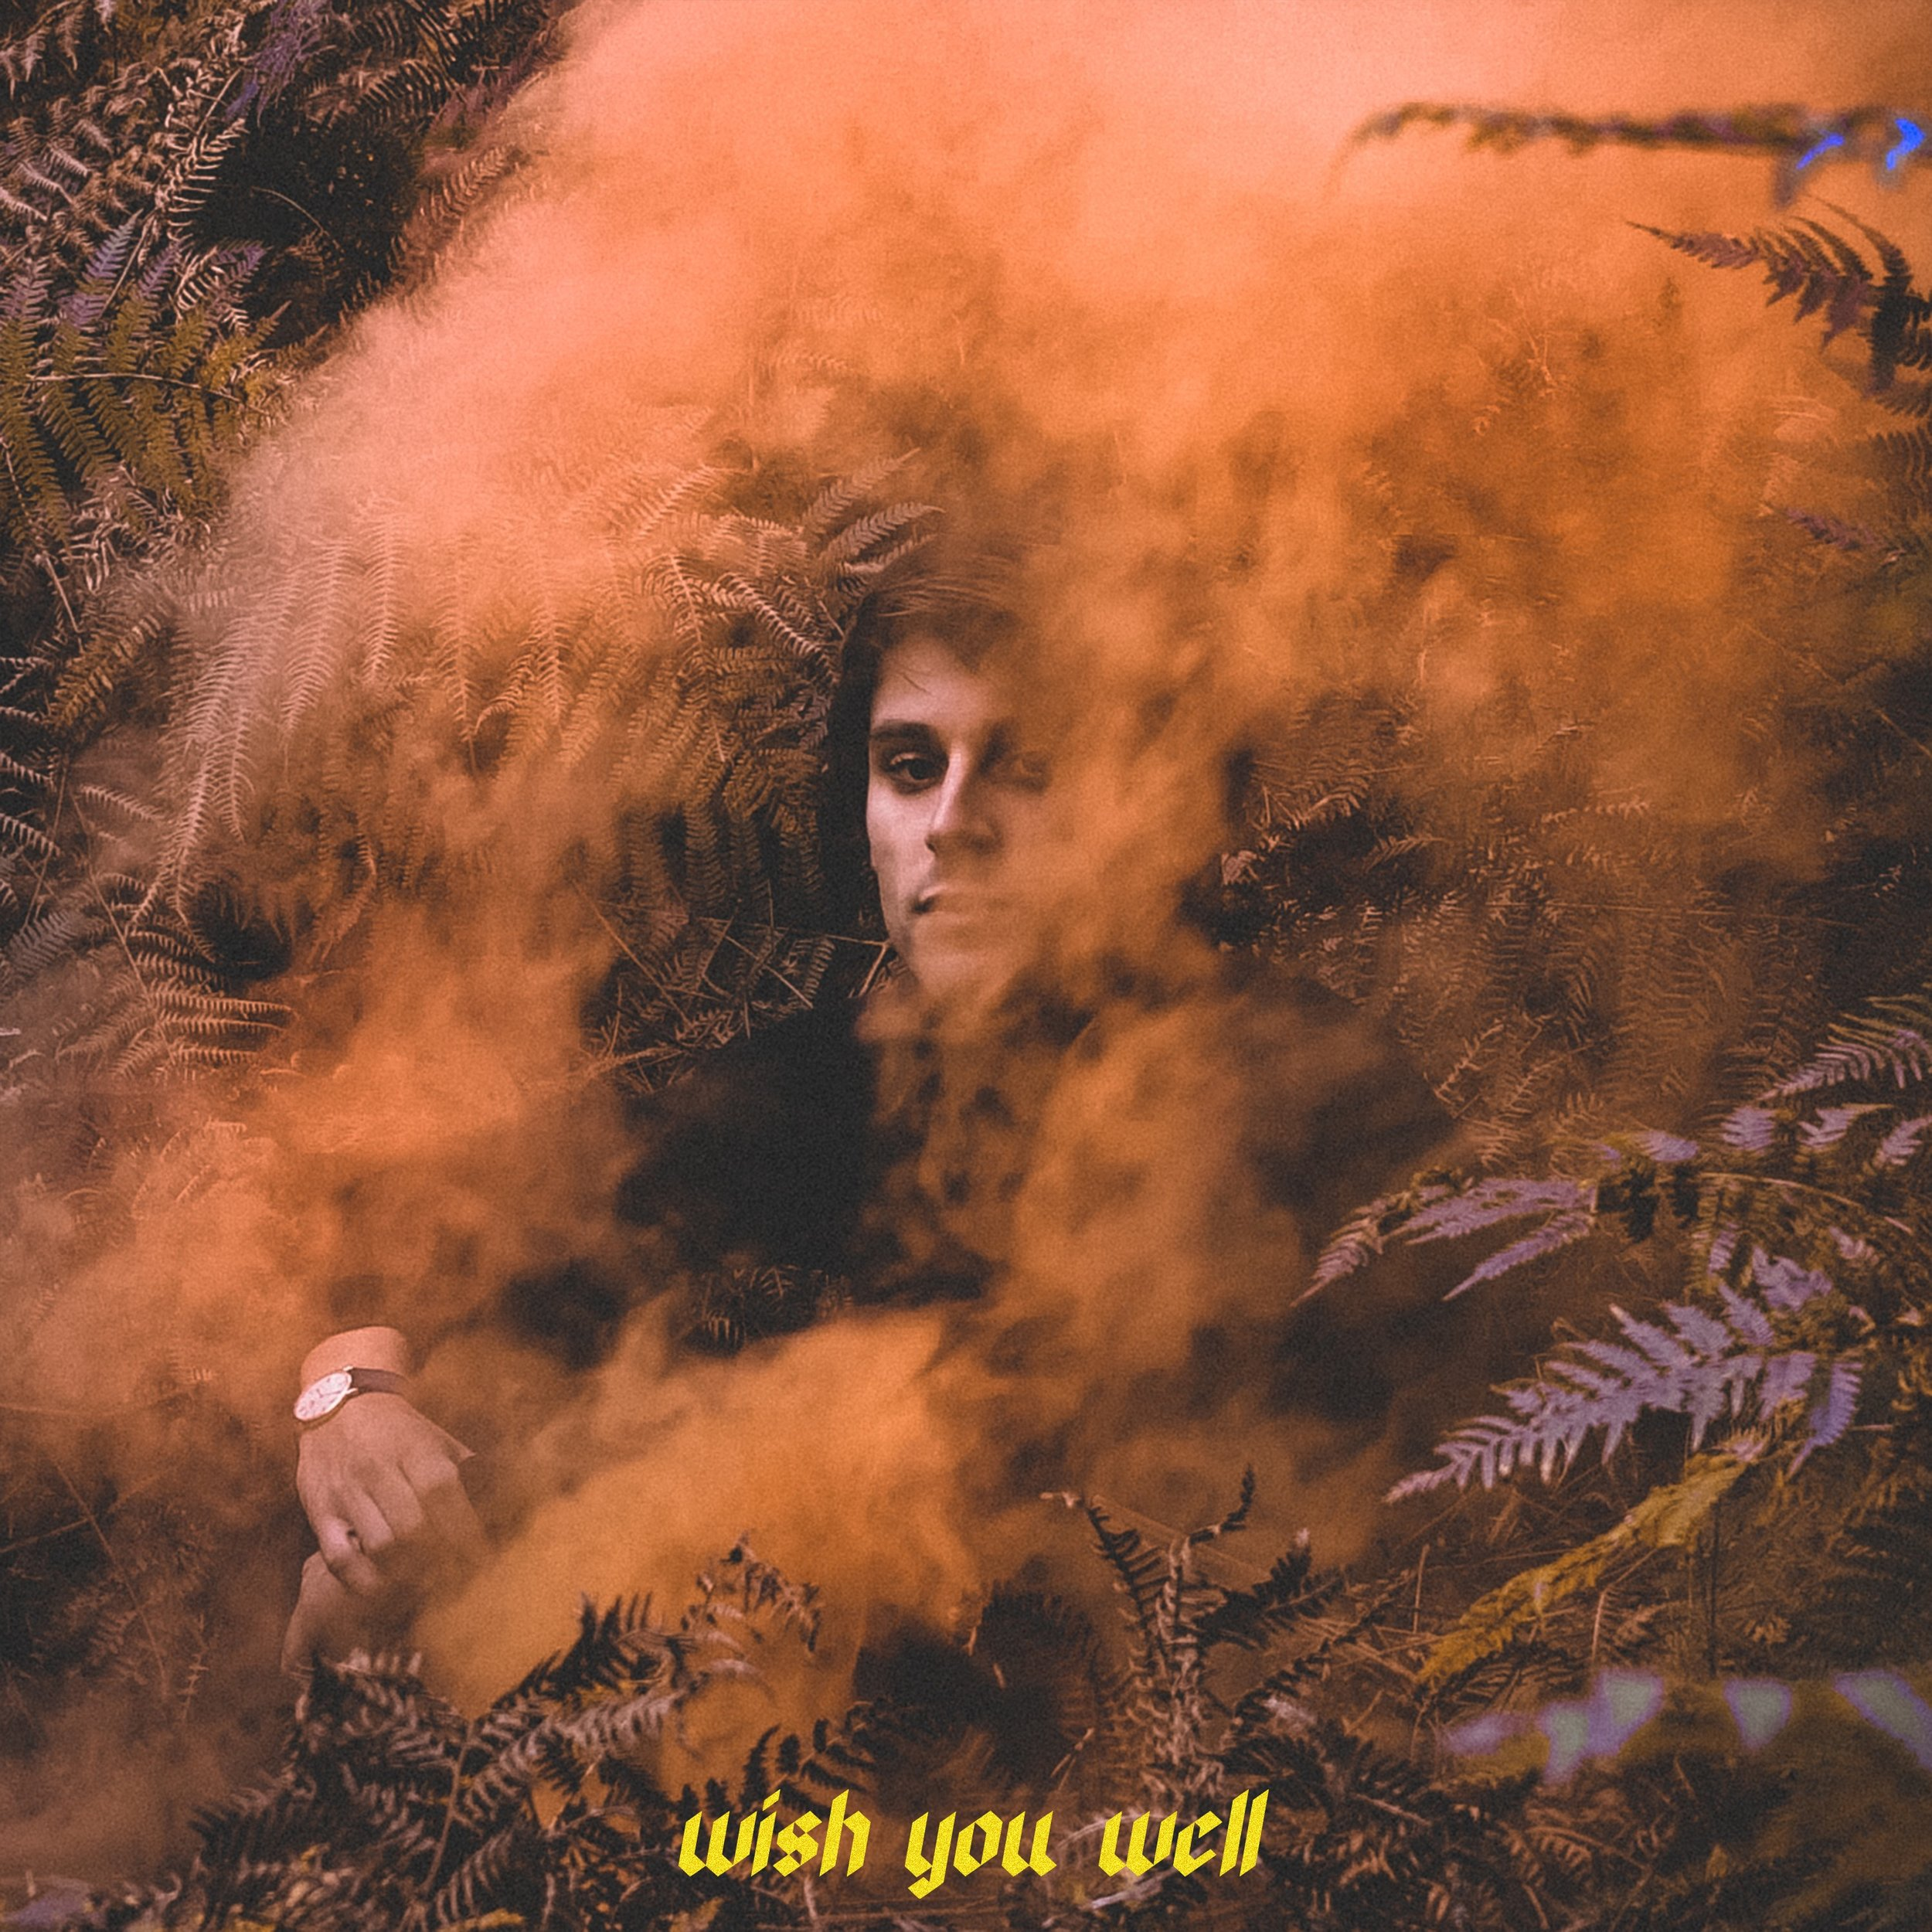 WISH YOU WELL (COVER) 2MB.jpg